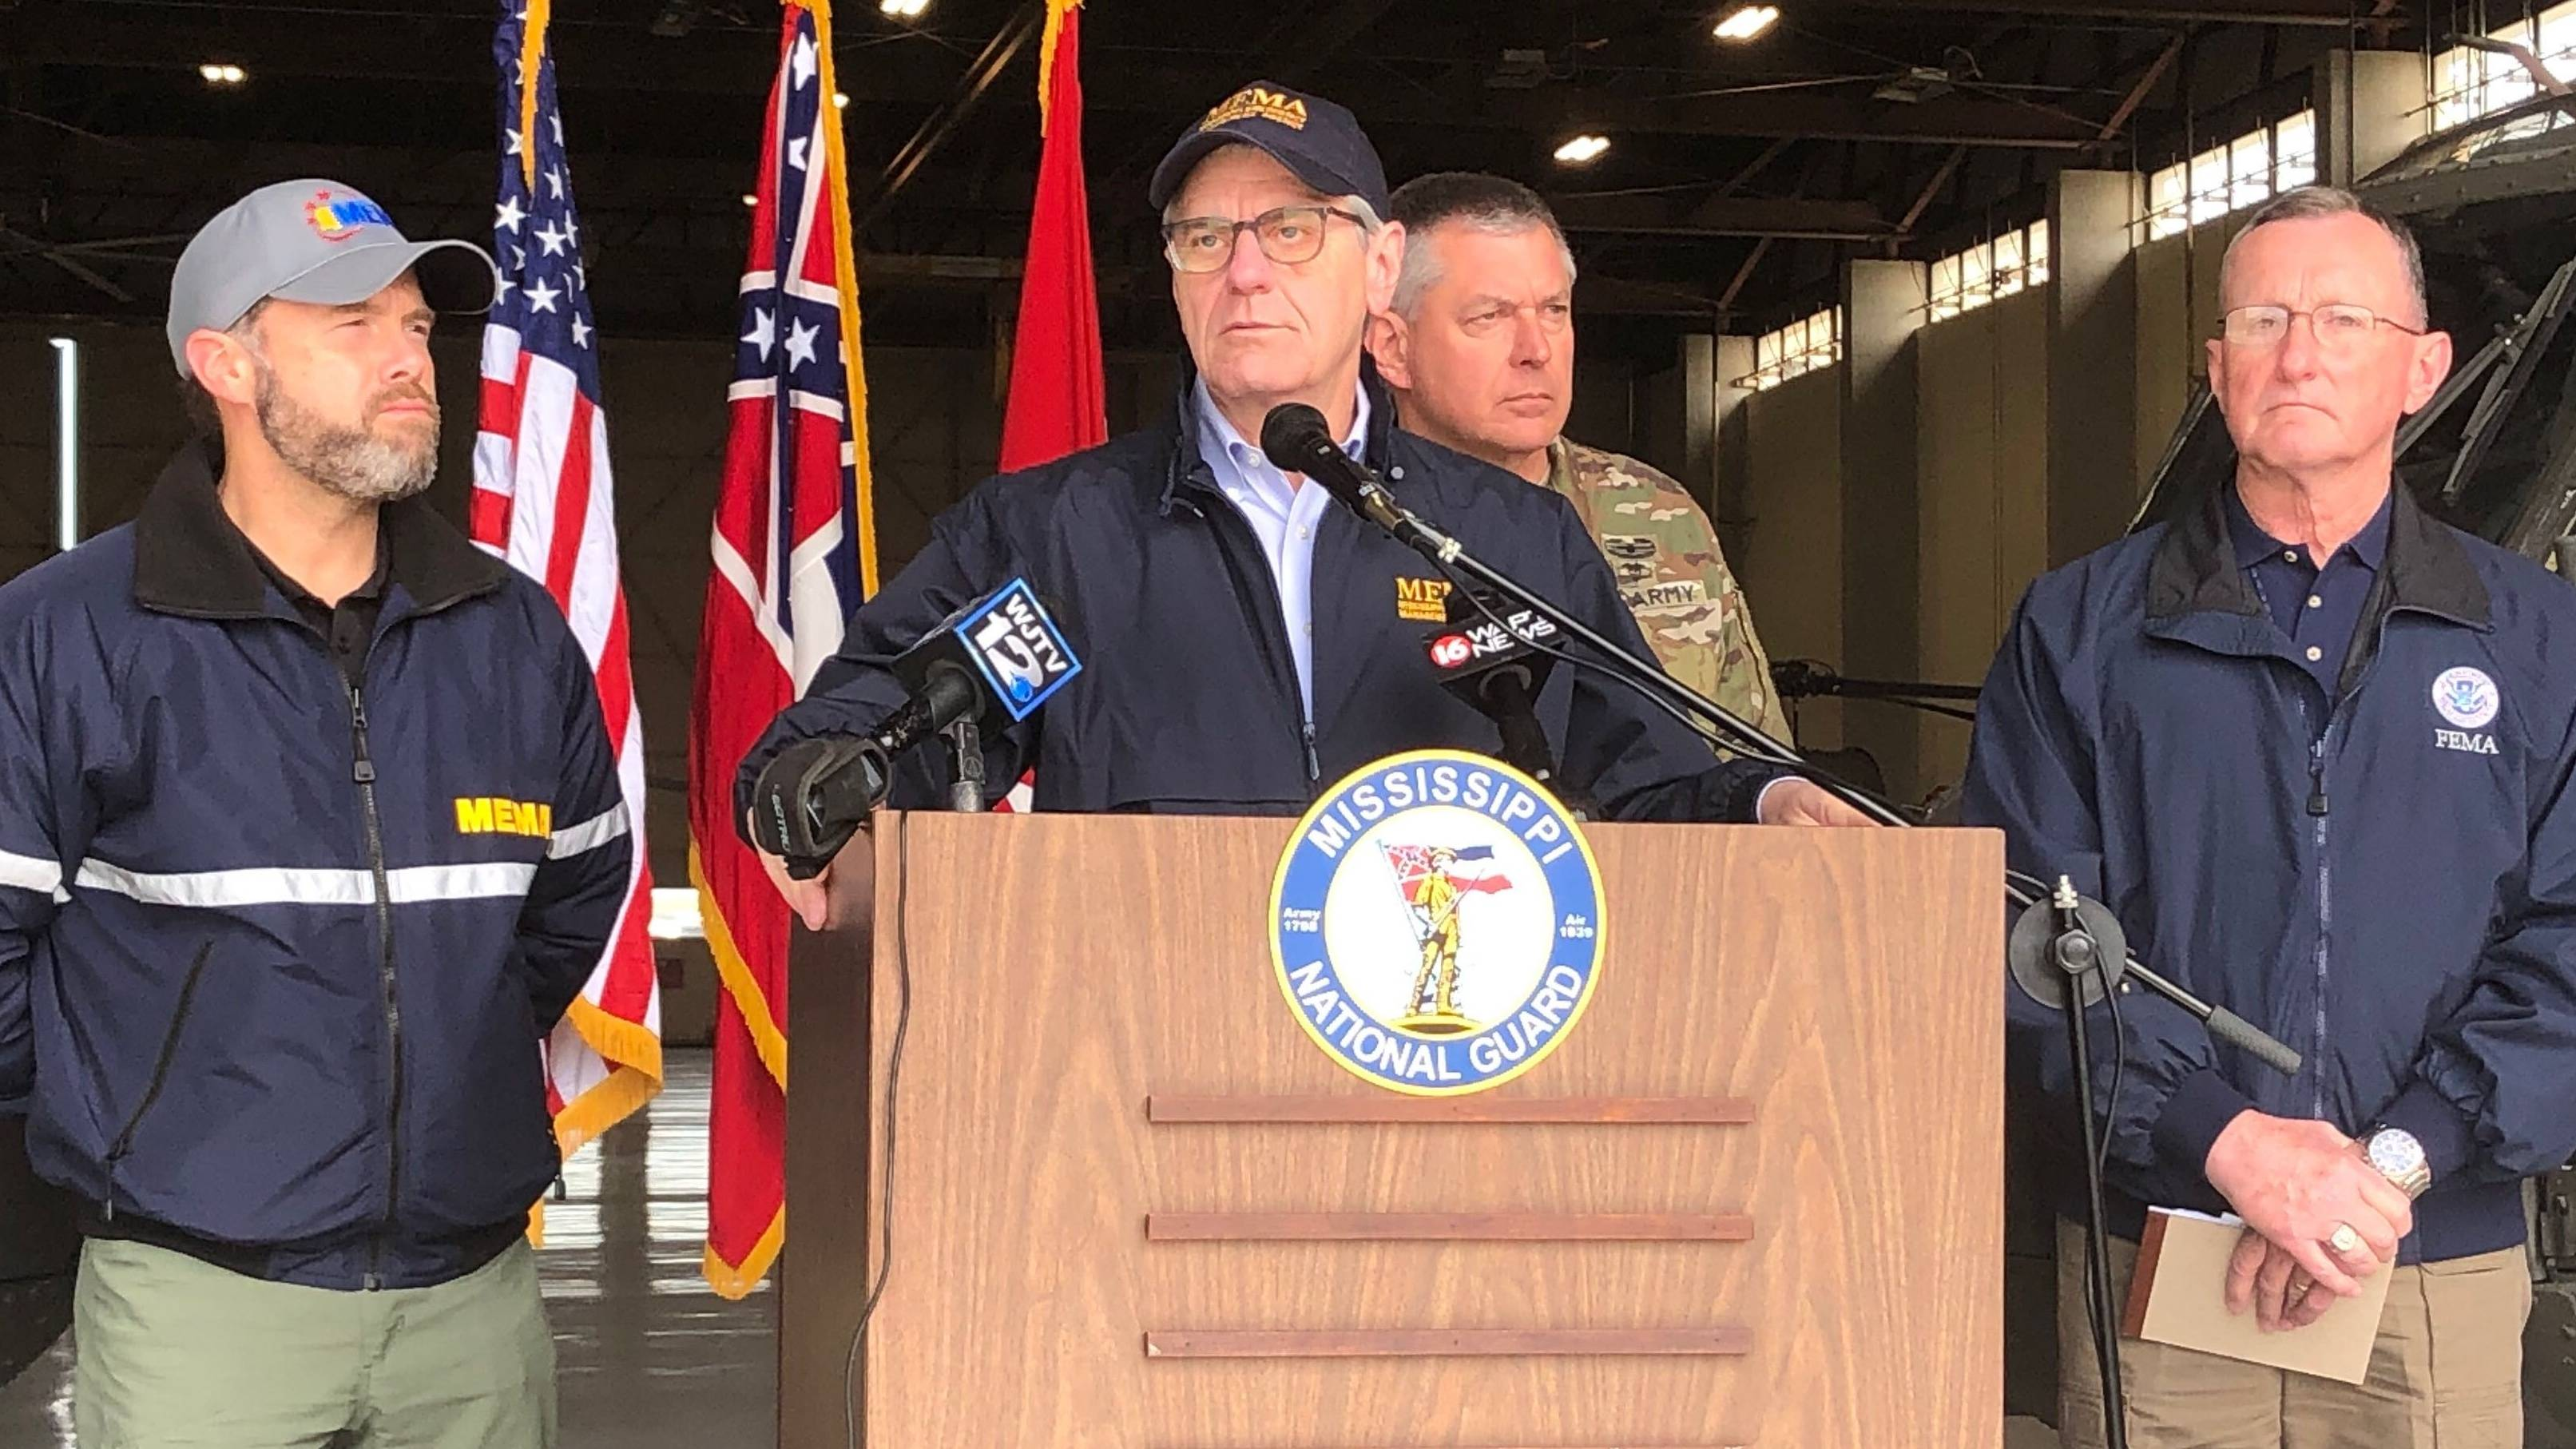 State officials say recovery from record flooding might take months